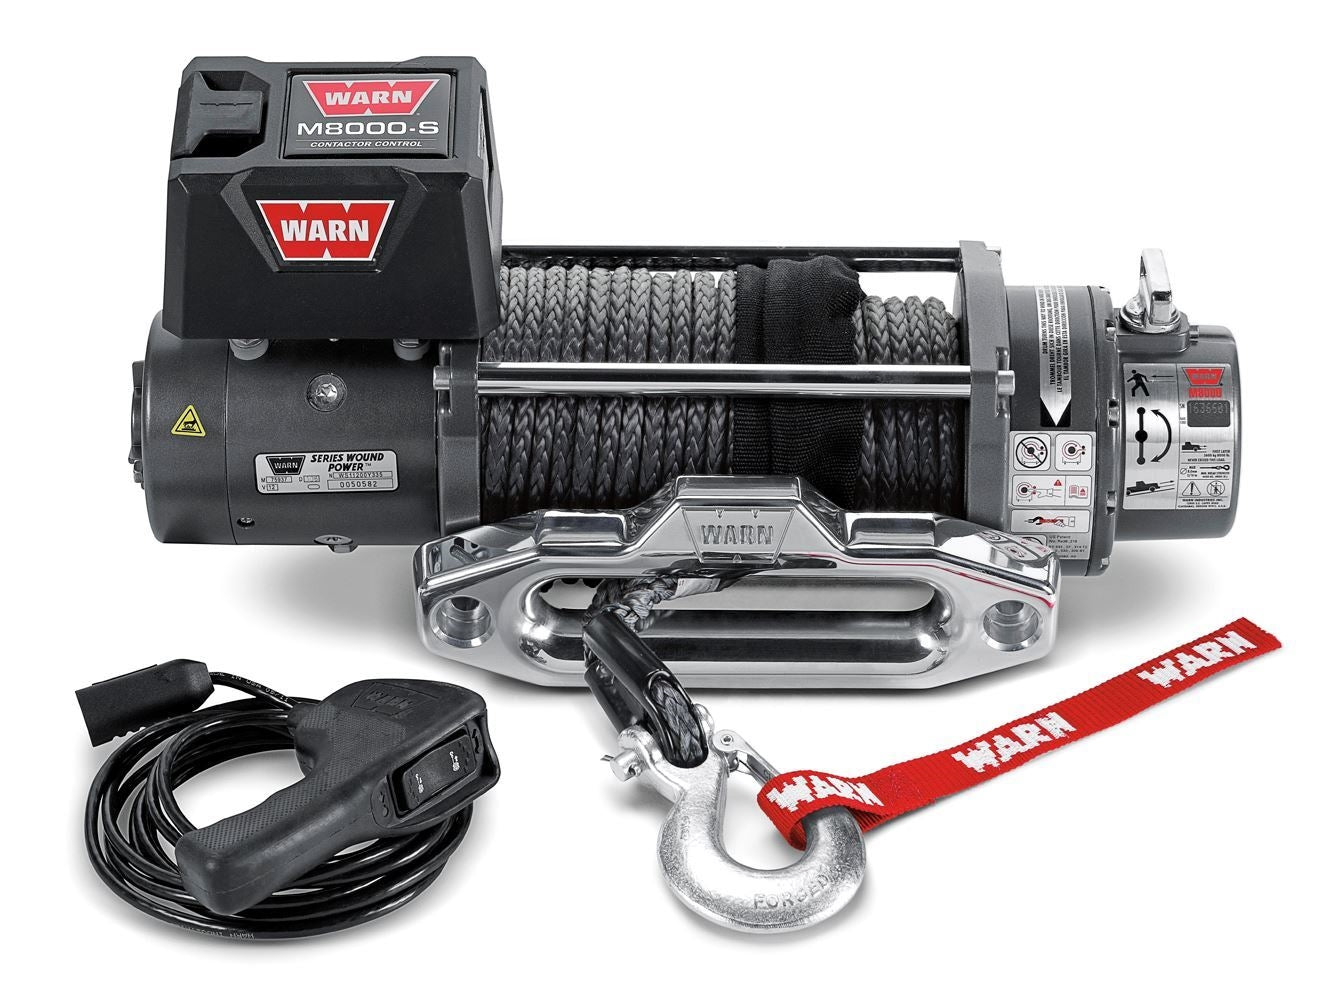 Warn Industries M8000-s 8,000lb Self-Recovery Winch - 87800